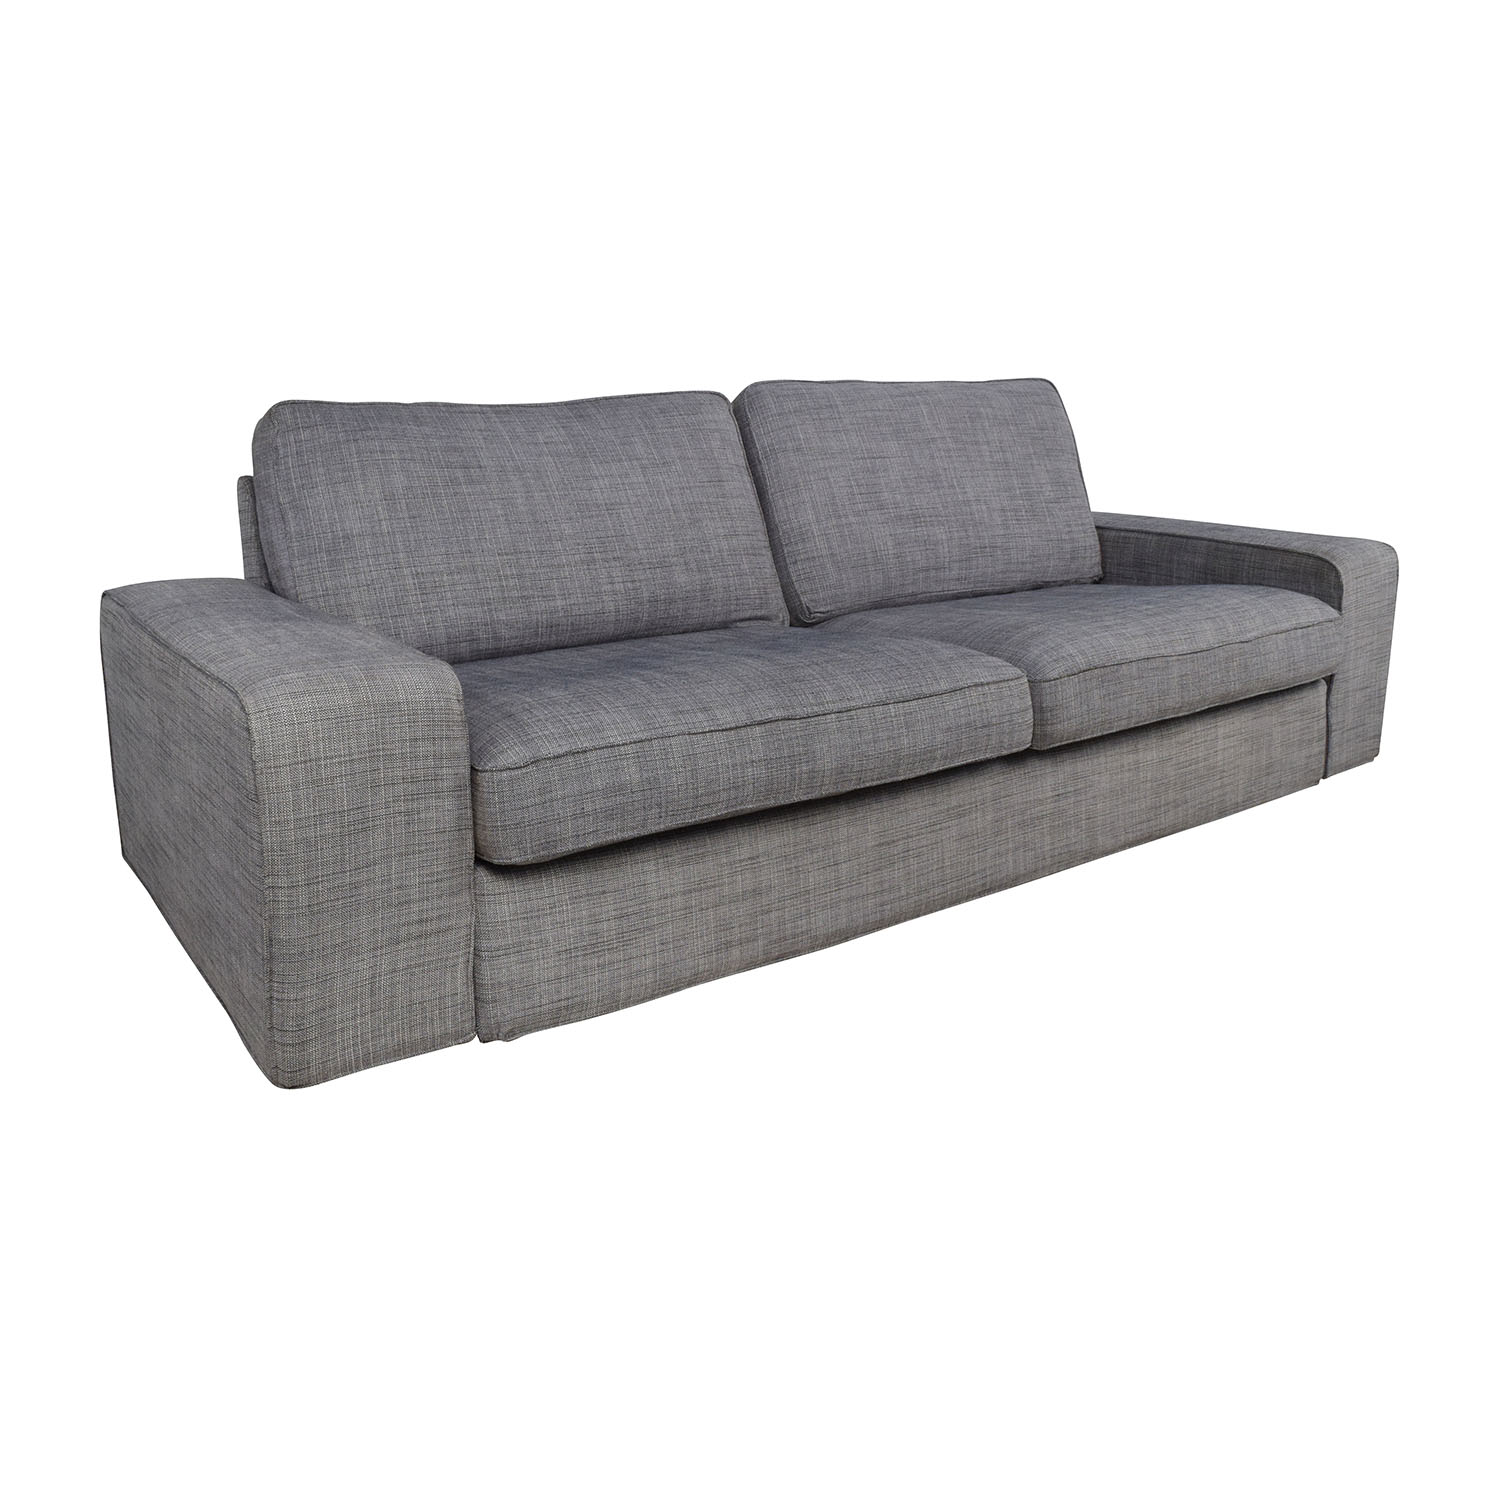 38 off ikea ikea kivik gray sofa sofas for Gray sofas for sale